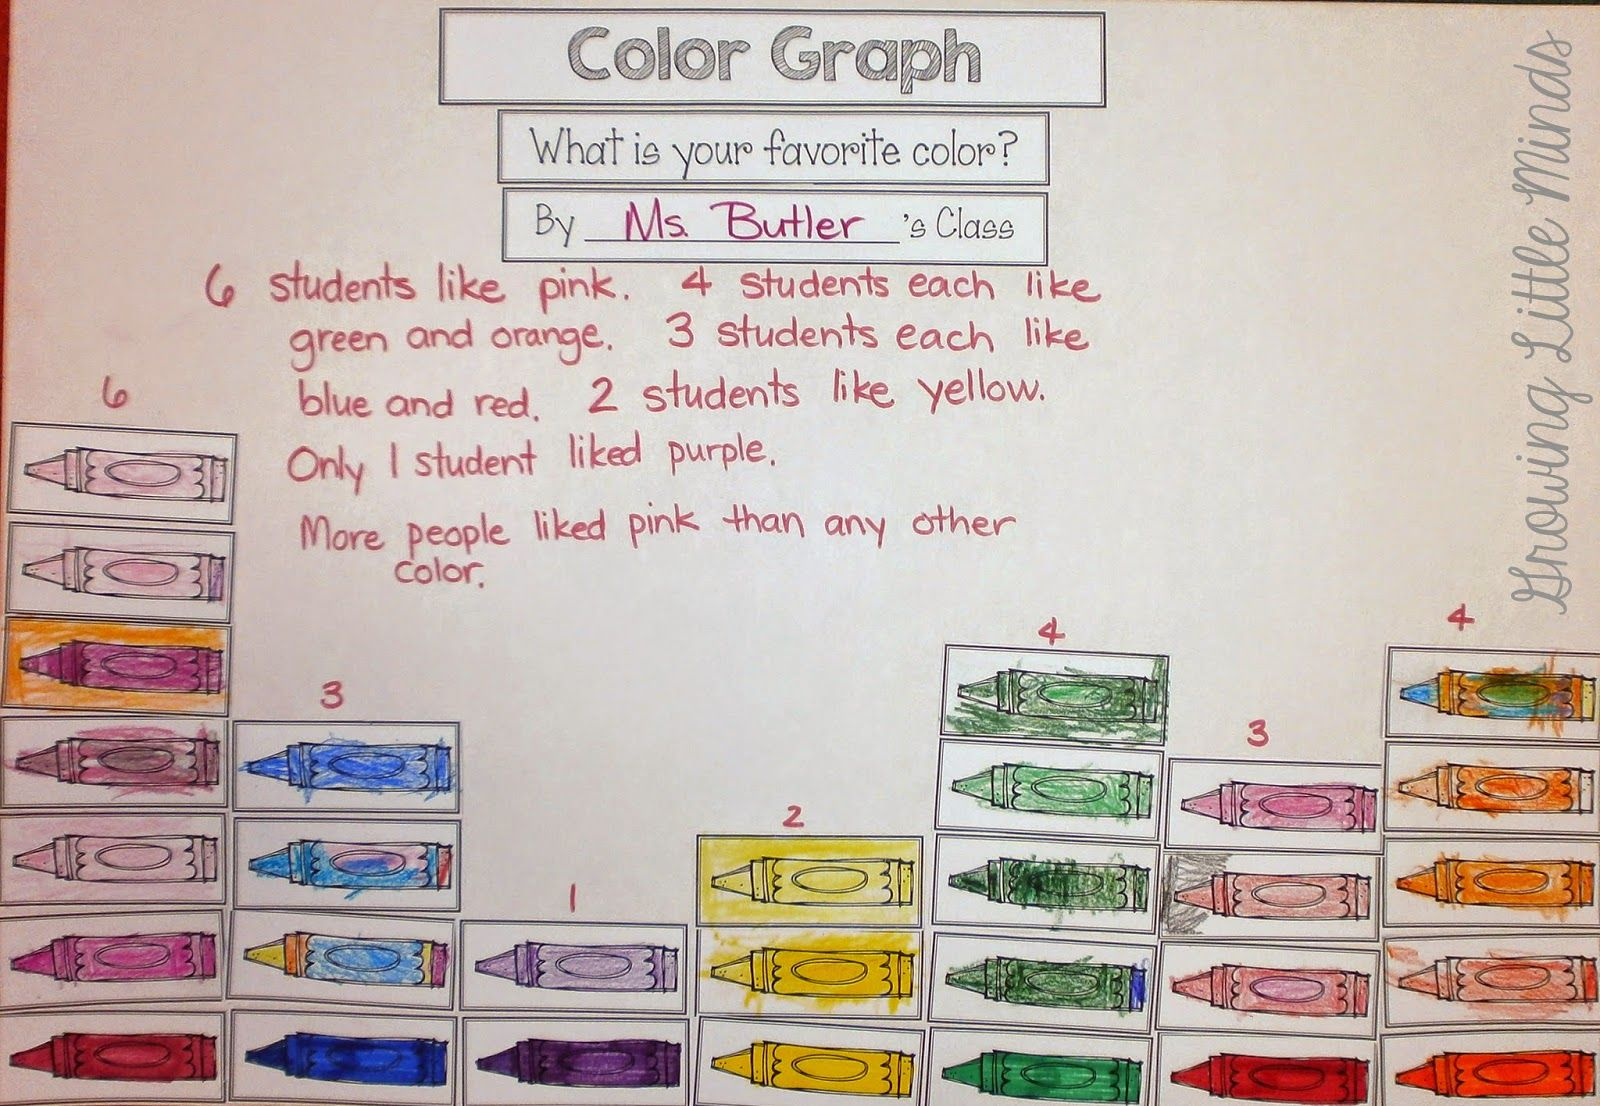 What Is Your Favorite Color Graphing Fun With